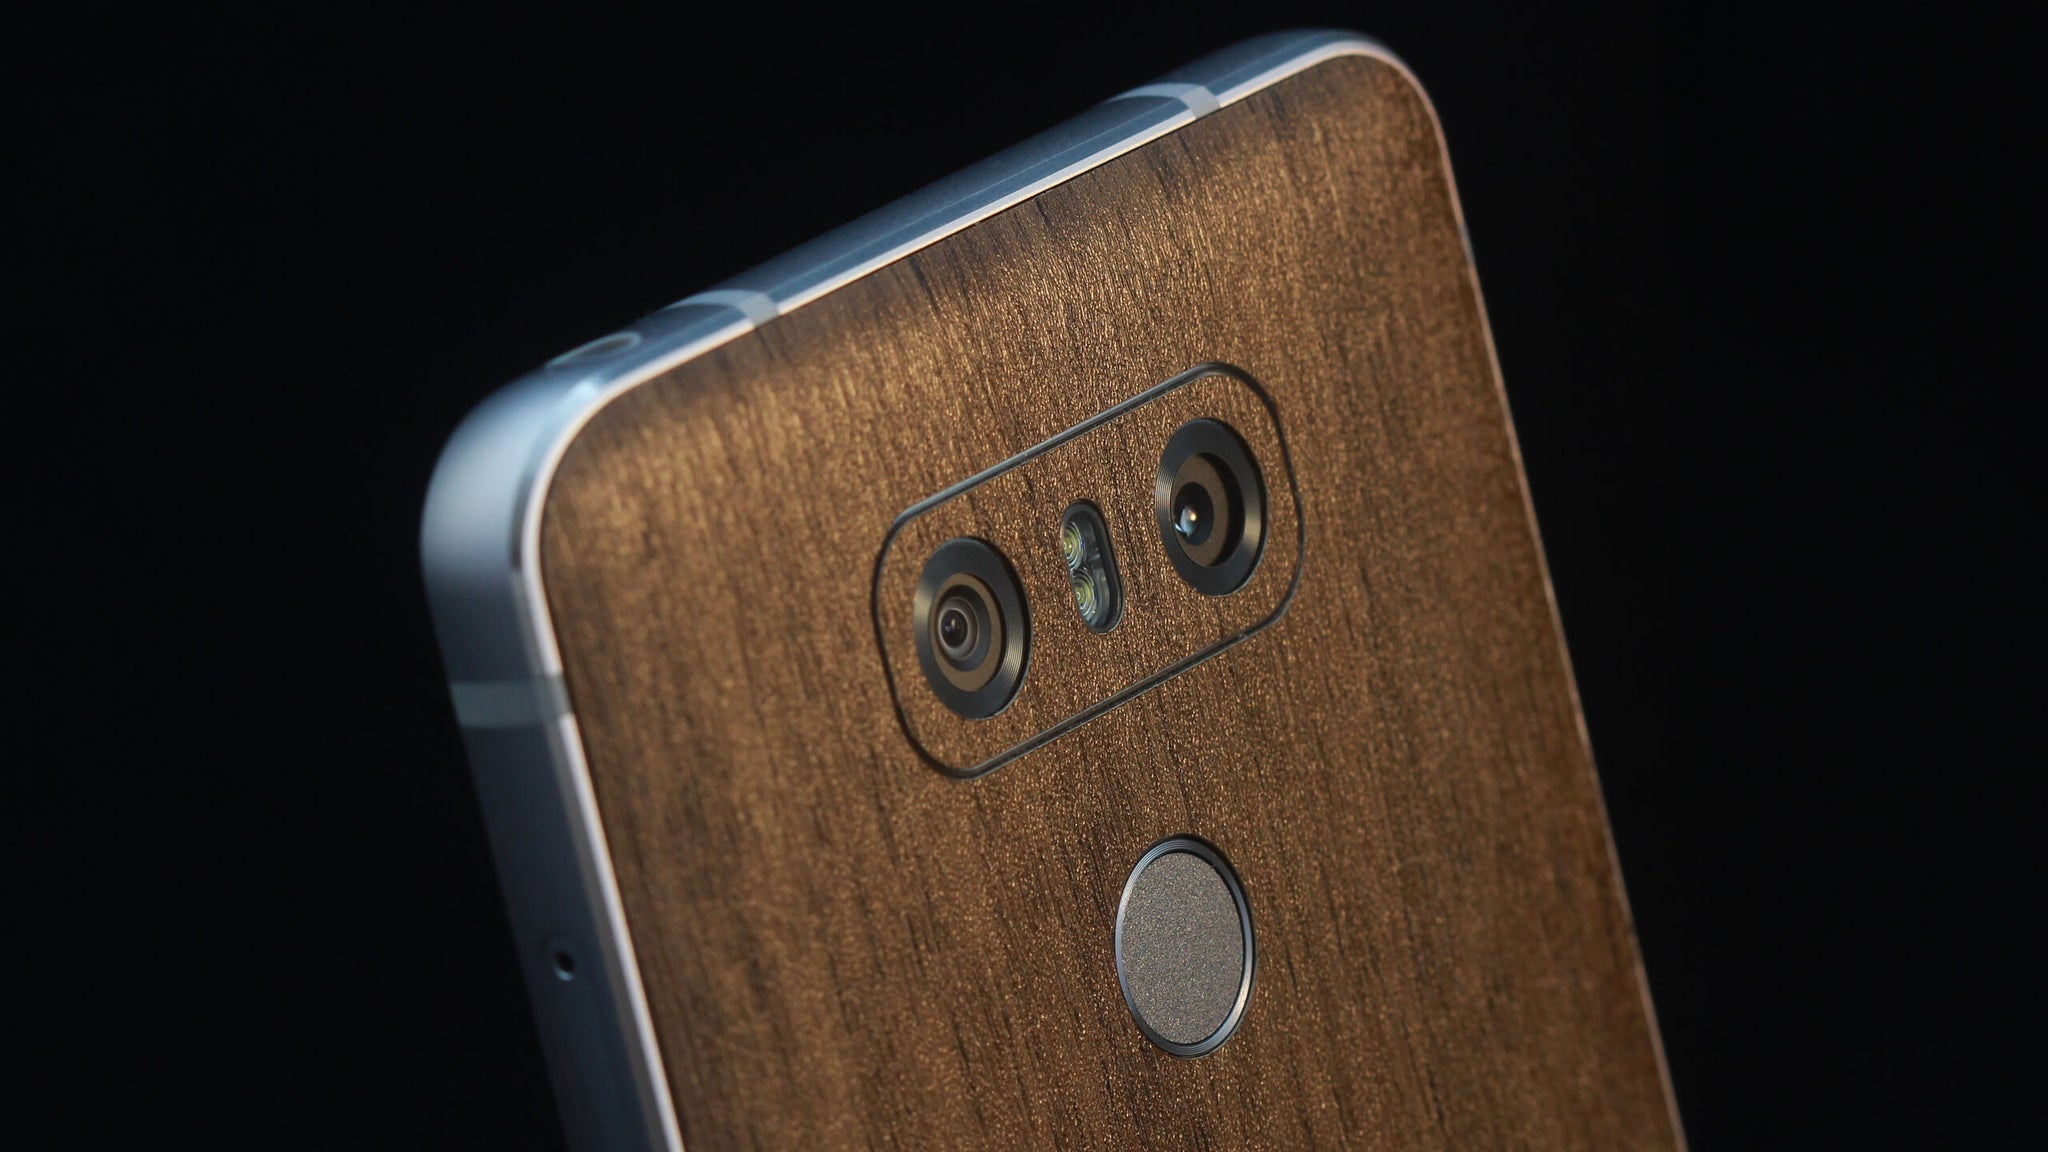 LG G6 Dark Oak Wood Skins